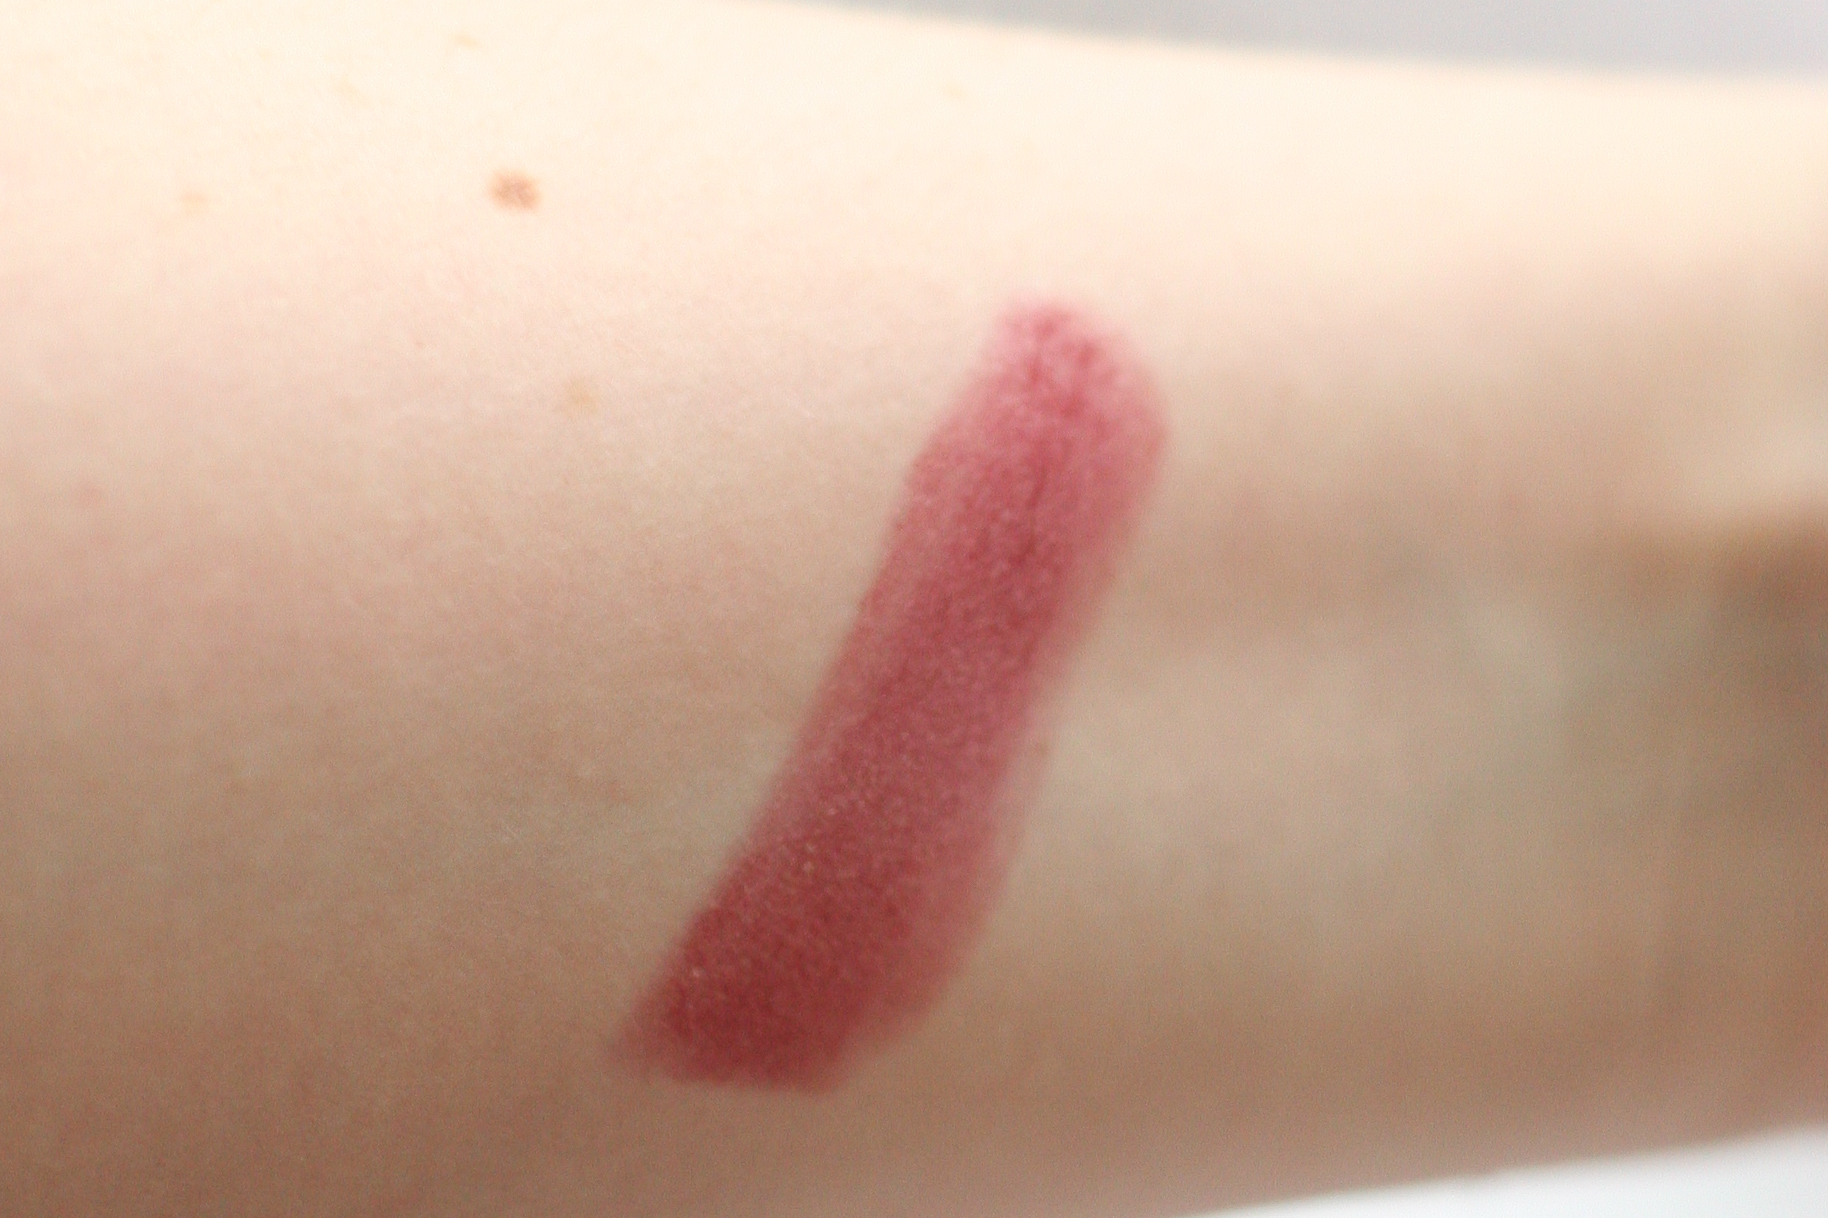 MAC lipstick in Capricious swatched.